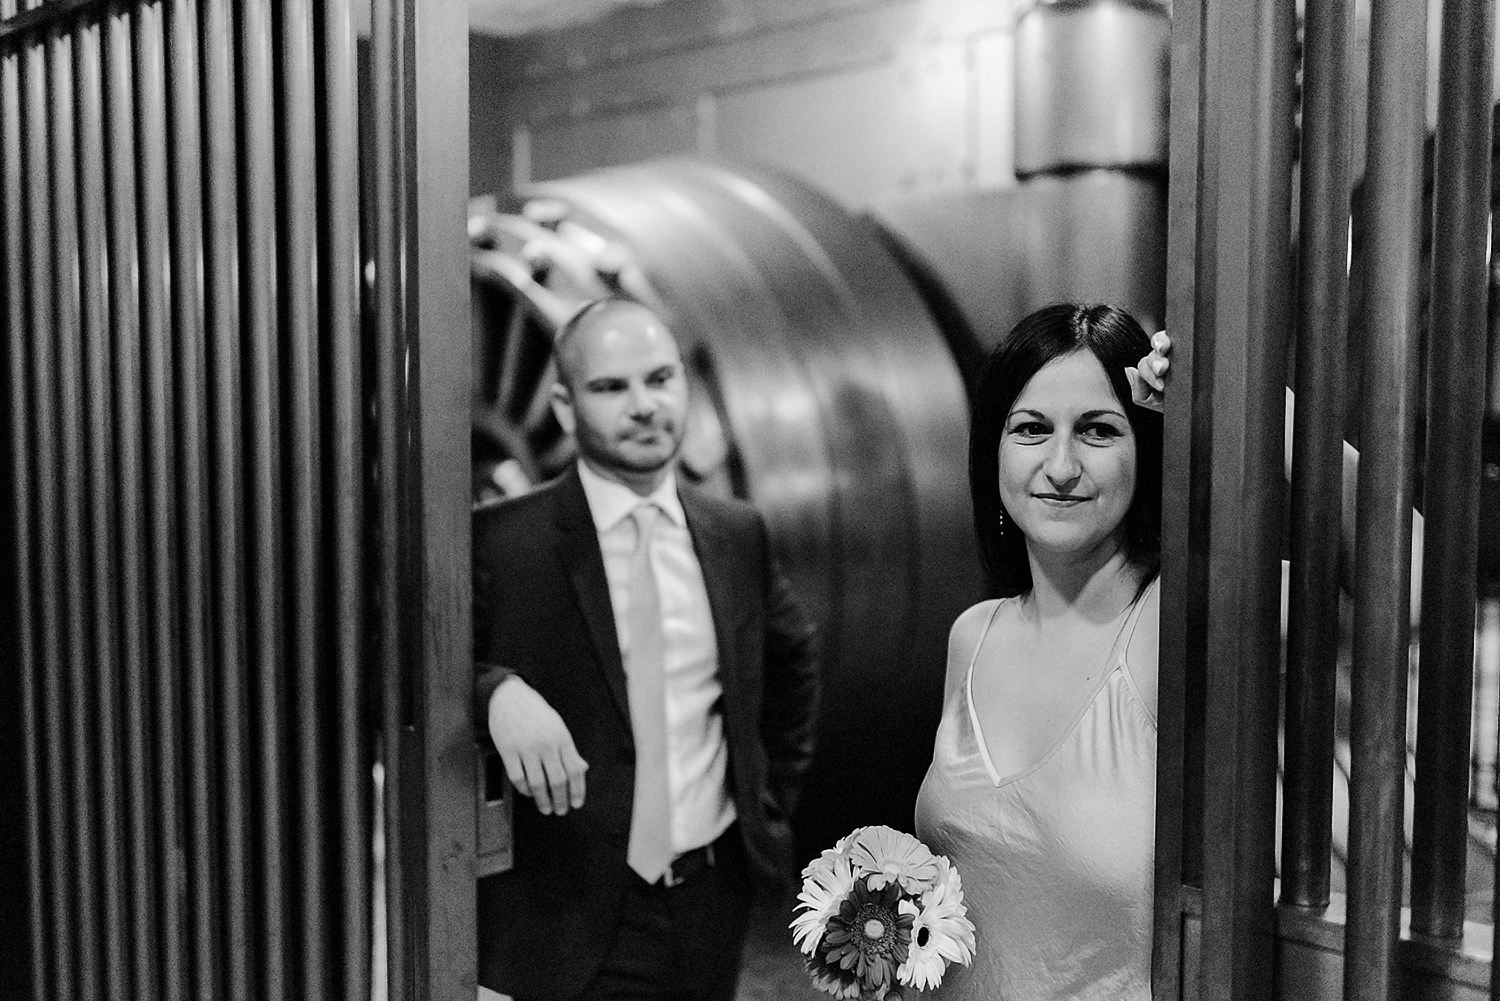 6-BEst-Wedding-Photographers-Toronto-One-King-West-Intimate-Wedding-Elopement-BW-Analog-Film-Portrait-candid-bank-vault_-Portraits-Editorial.jpg